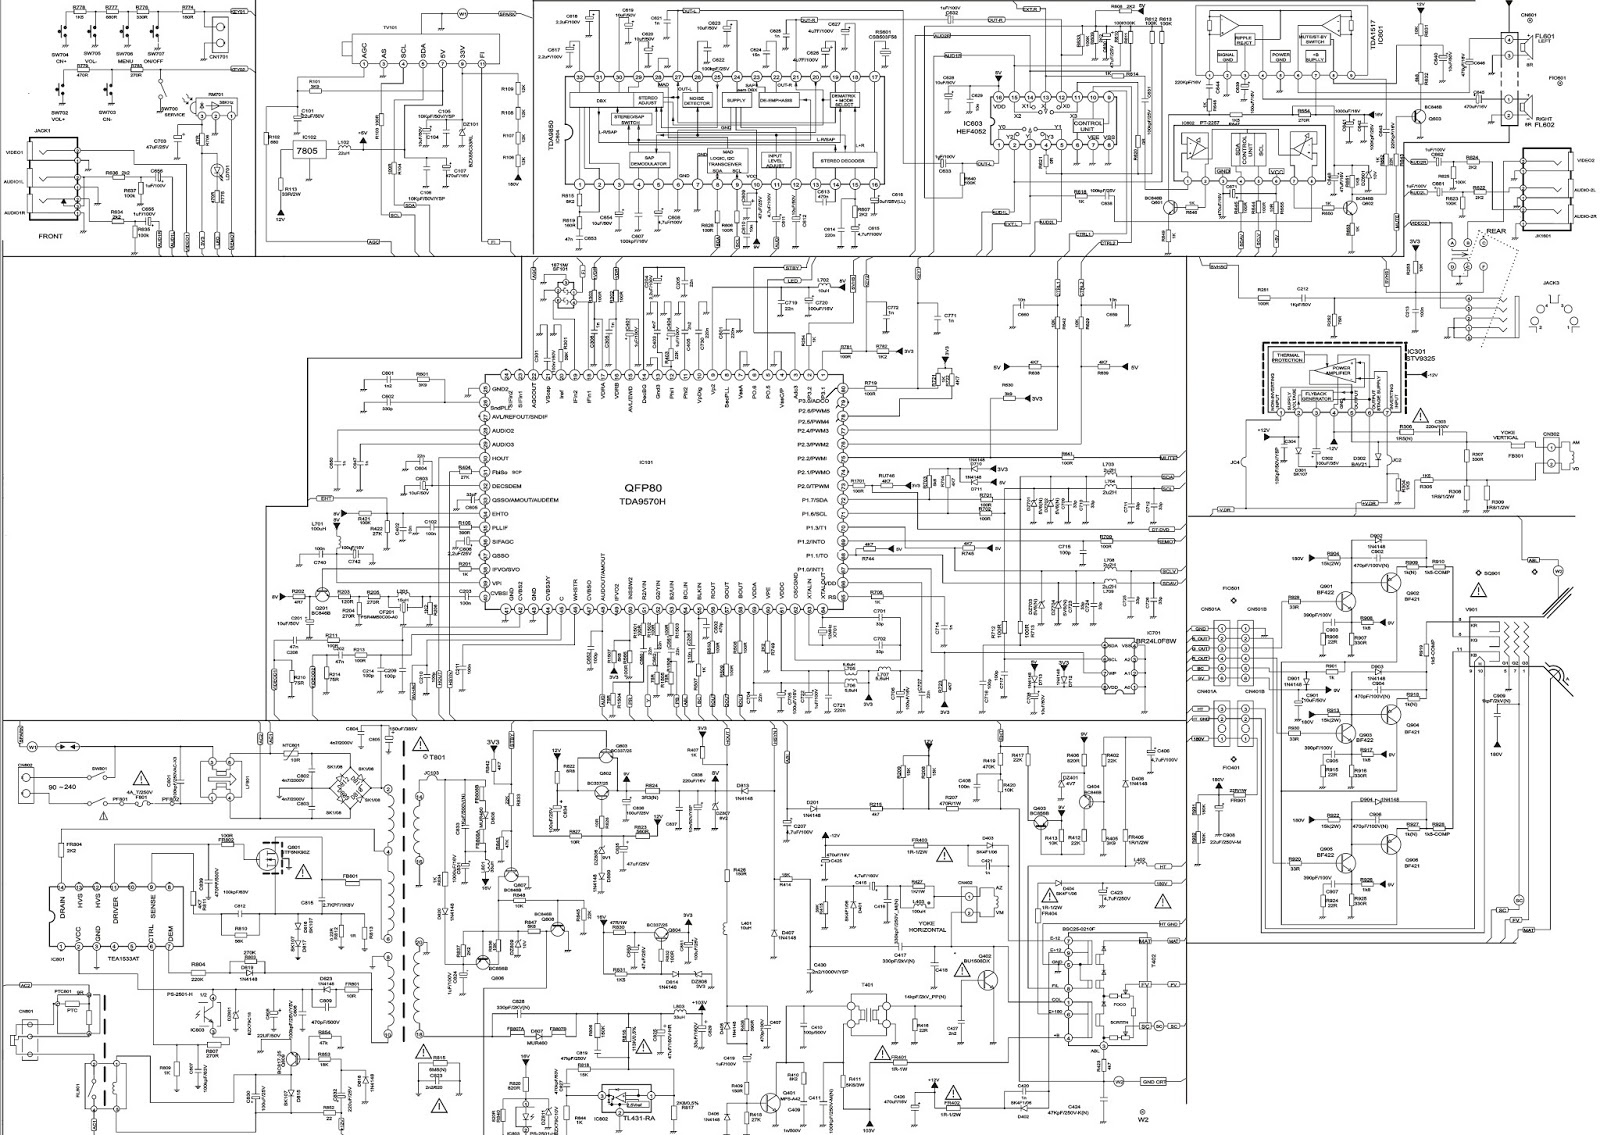 Onida Igo Delite 21 14 Used Ics M37160 Diagram Of Circuit